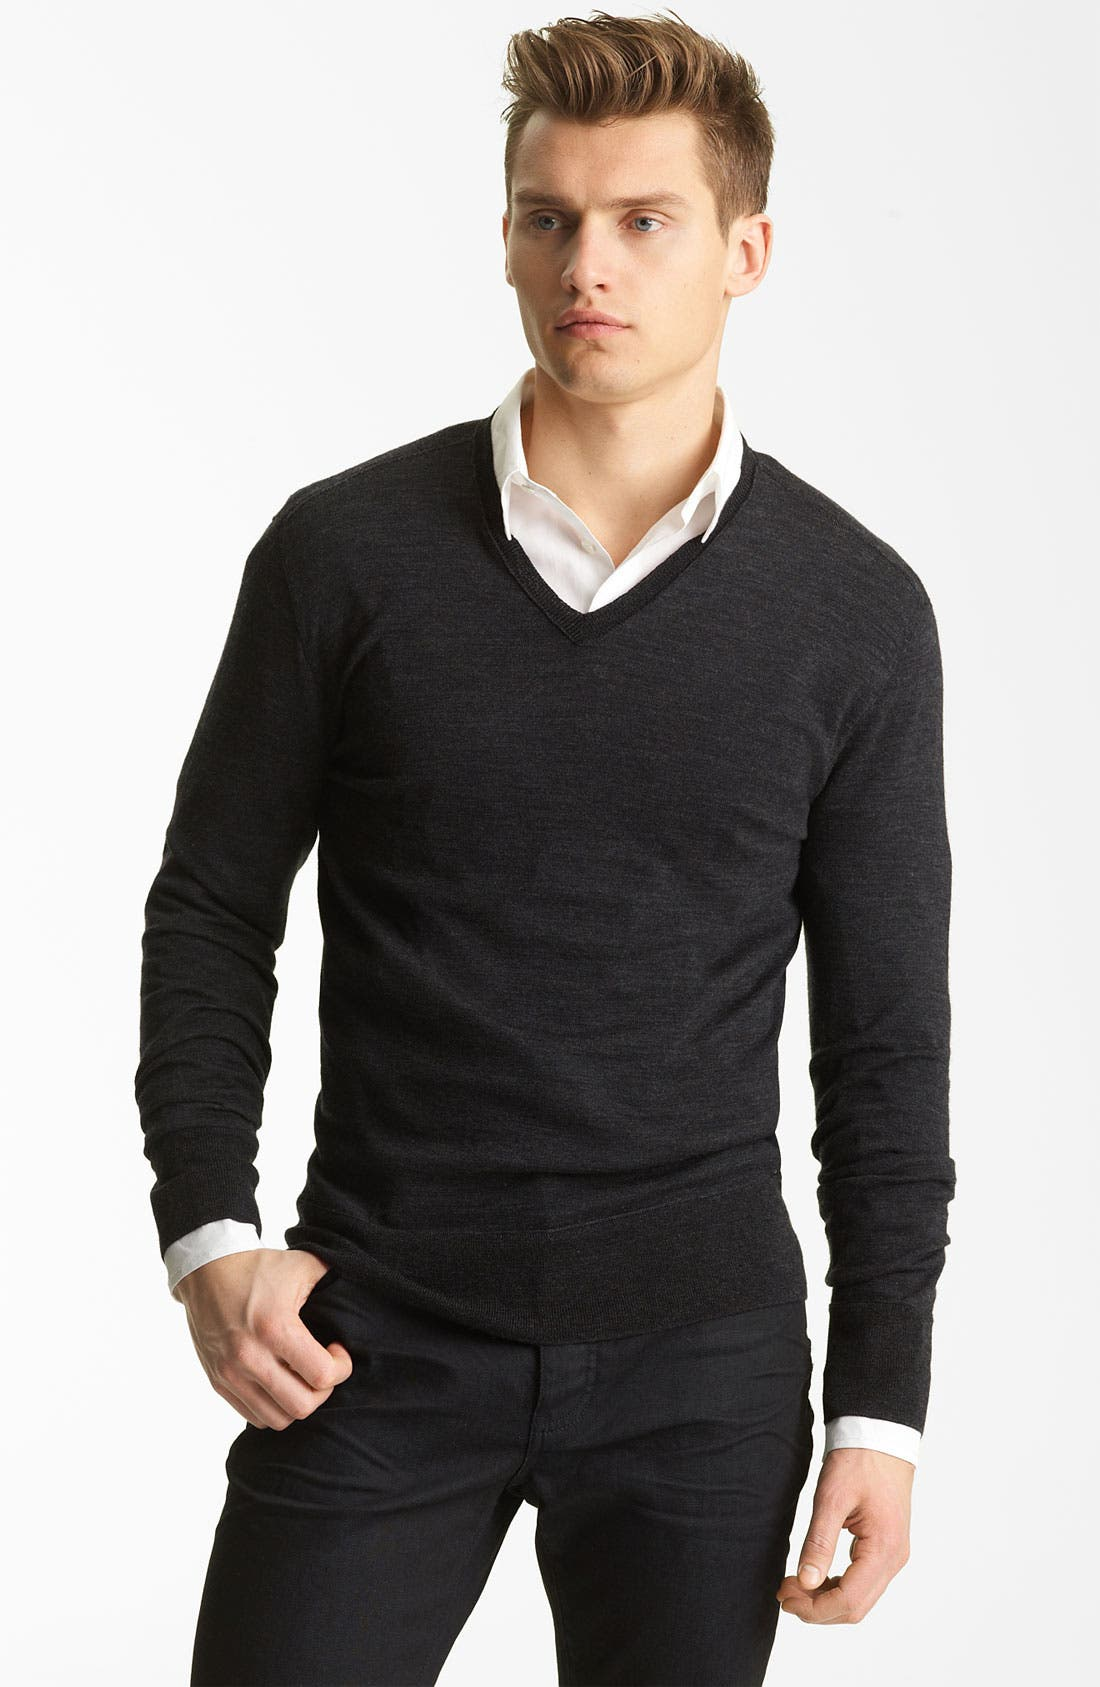 Main Image - John Varvatos Collection V-Neck Wool Knit Sweater